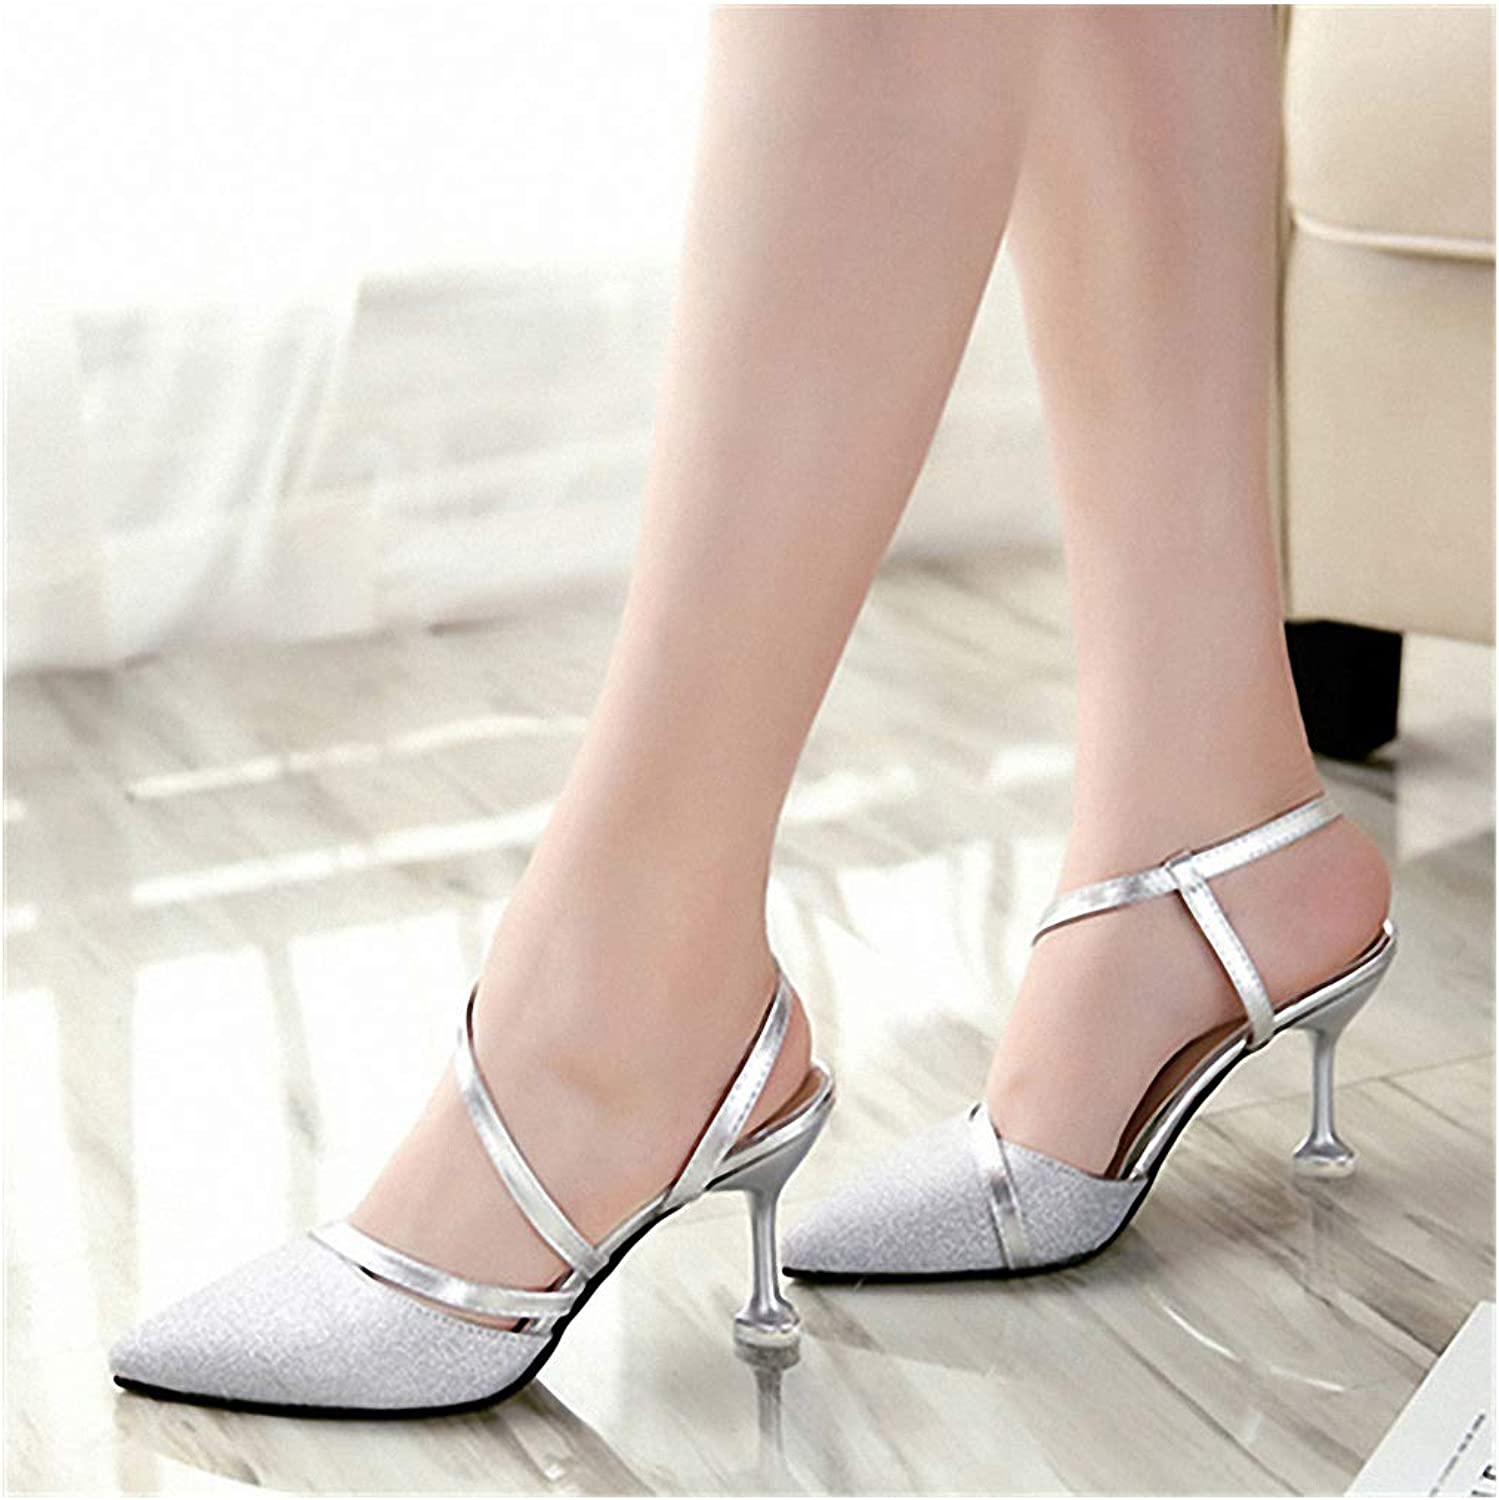 Tebapi Womens High-Heeled Pumps shoes Spring Heel High Heels Sandals Lady Pumps Classics Slip on shoes Sexy Women Party shoes gold Silver Wedding Slingbacks 8cm